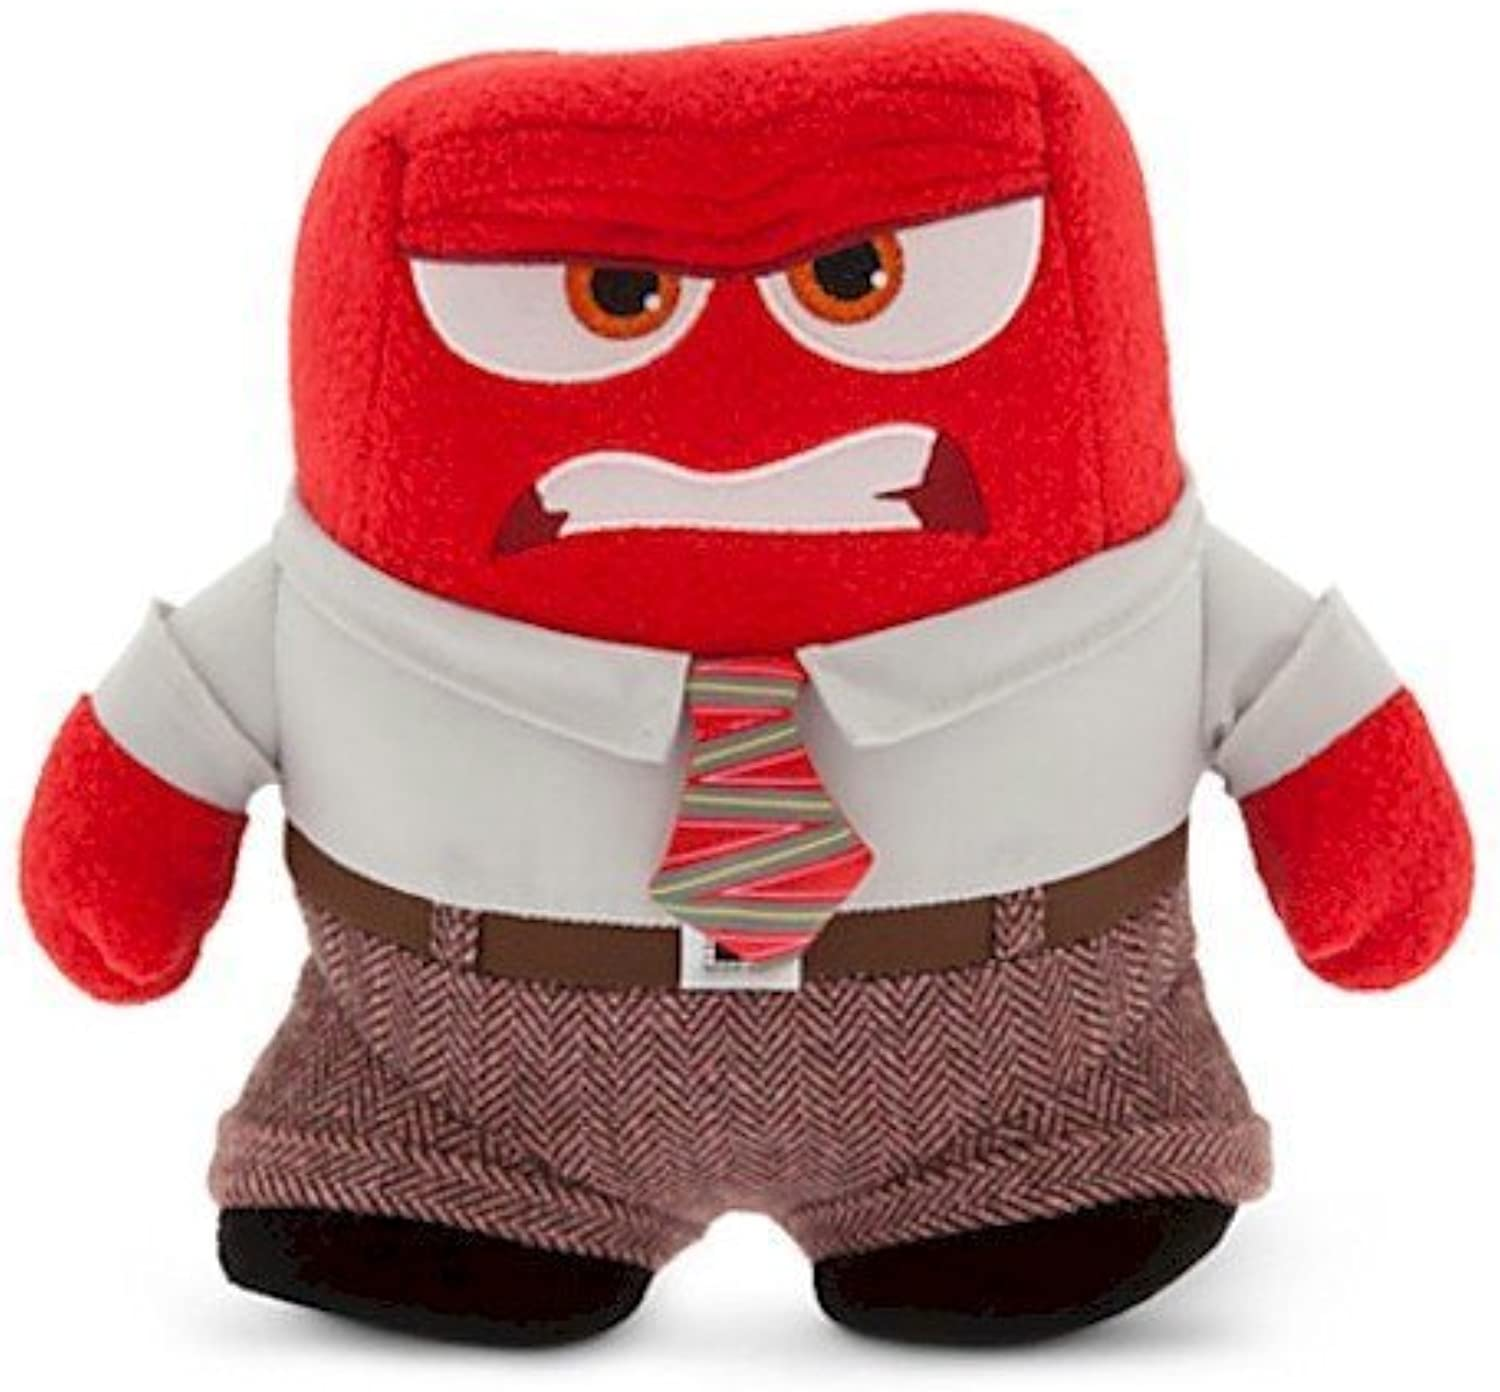 Anger Plush  Disney& x2022;Pixar Inside Out  Small  8 1 2'' by Pixar